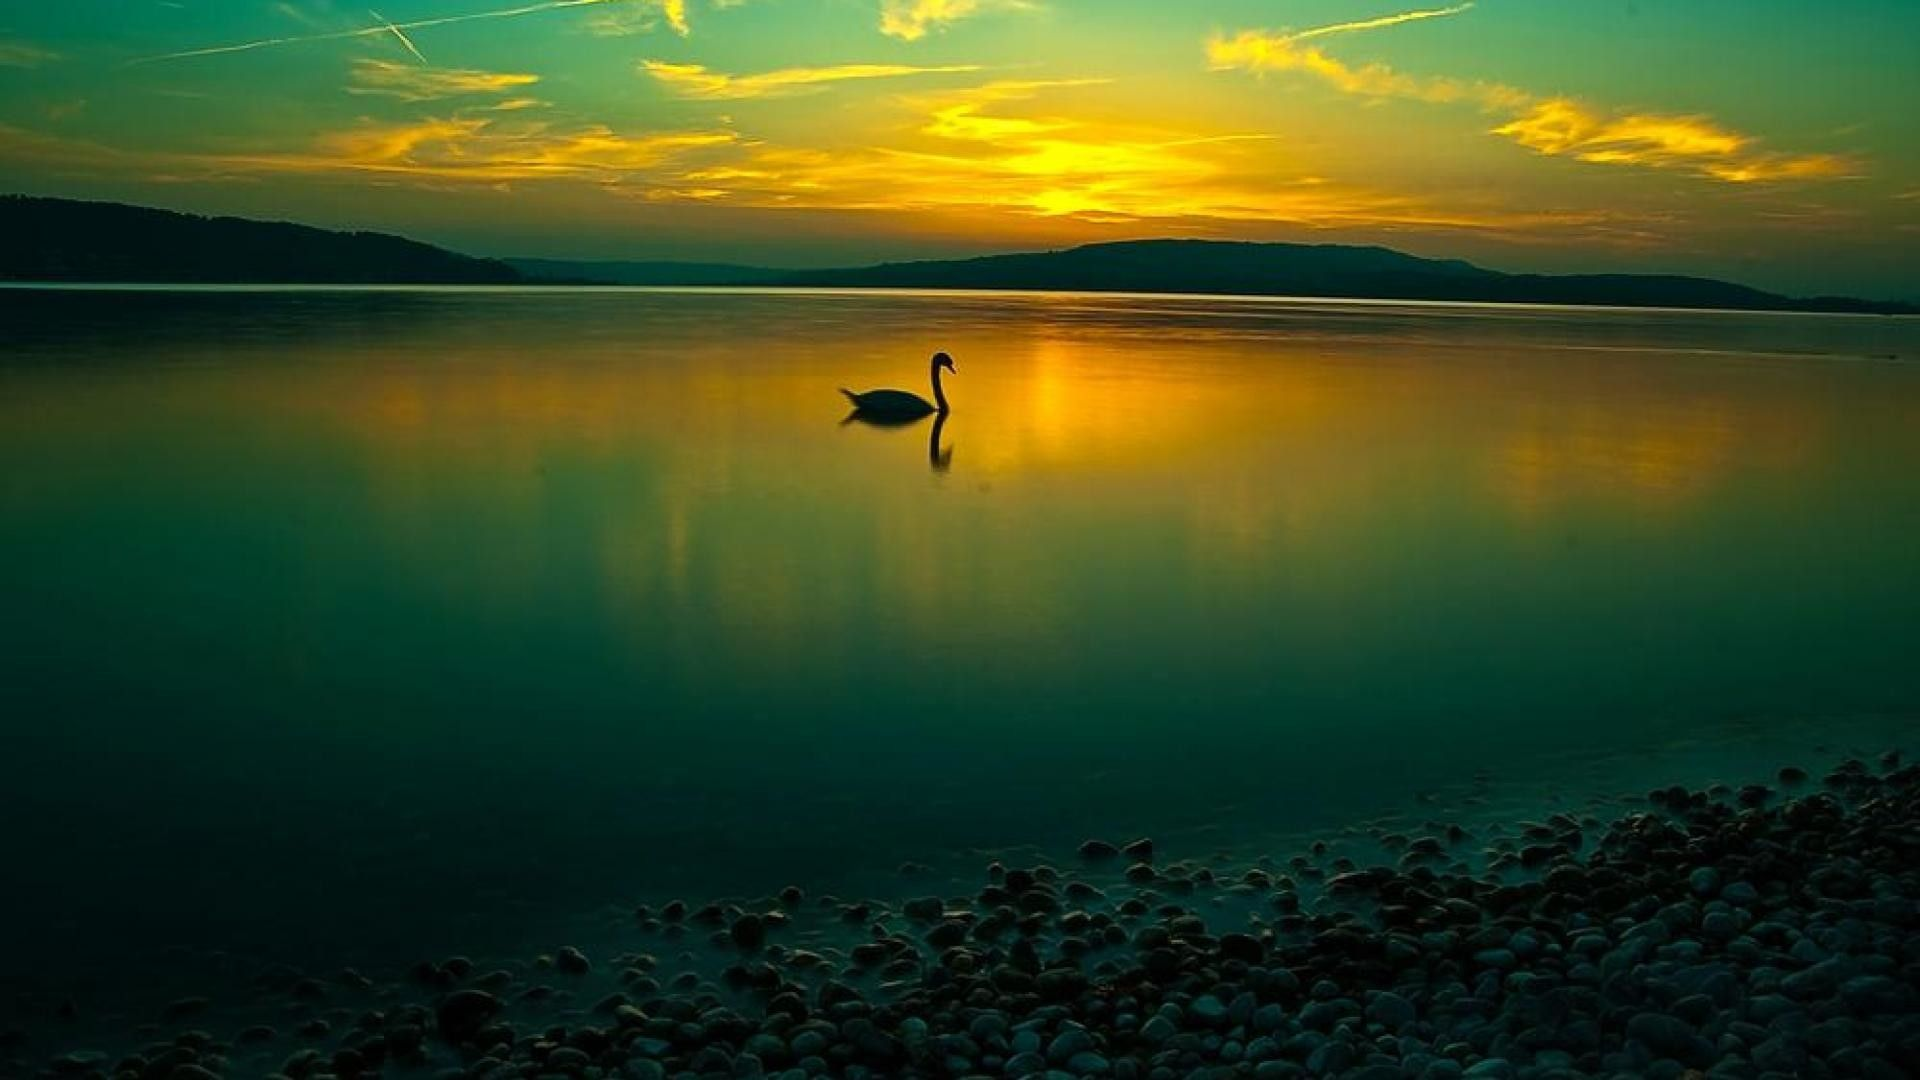 Tranquillity Tranquility Calmness Tranquillity